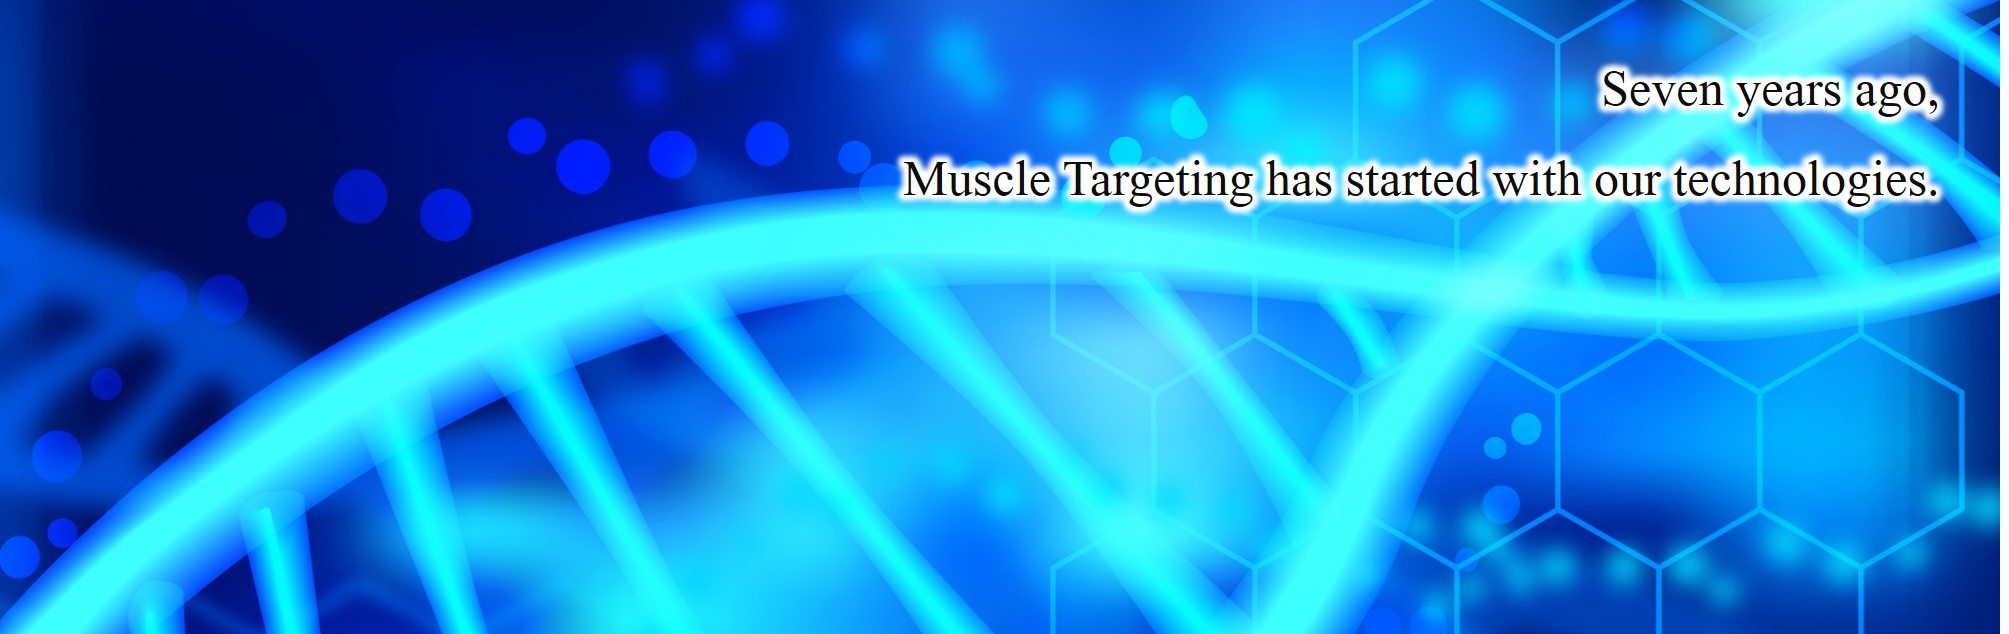 Seven years ago, Muscle Targeting has started with our technologies.